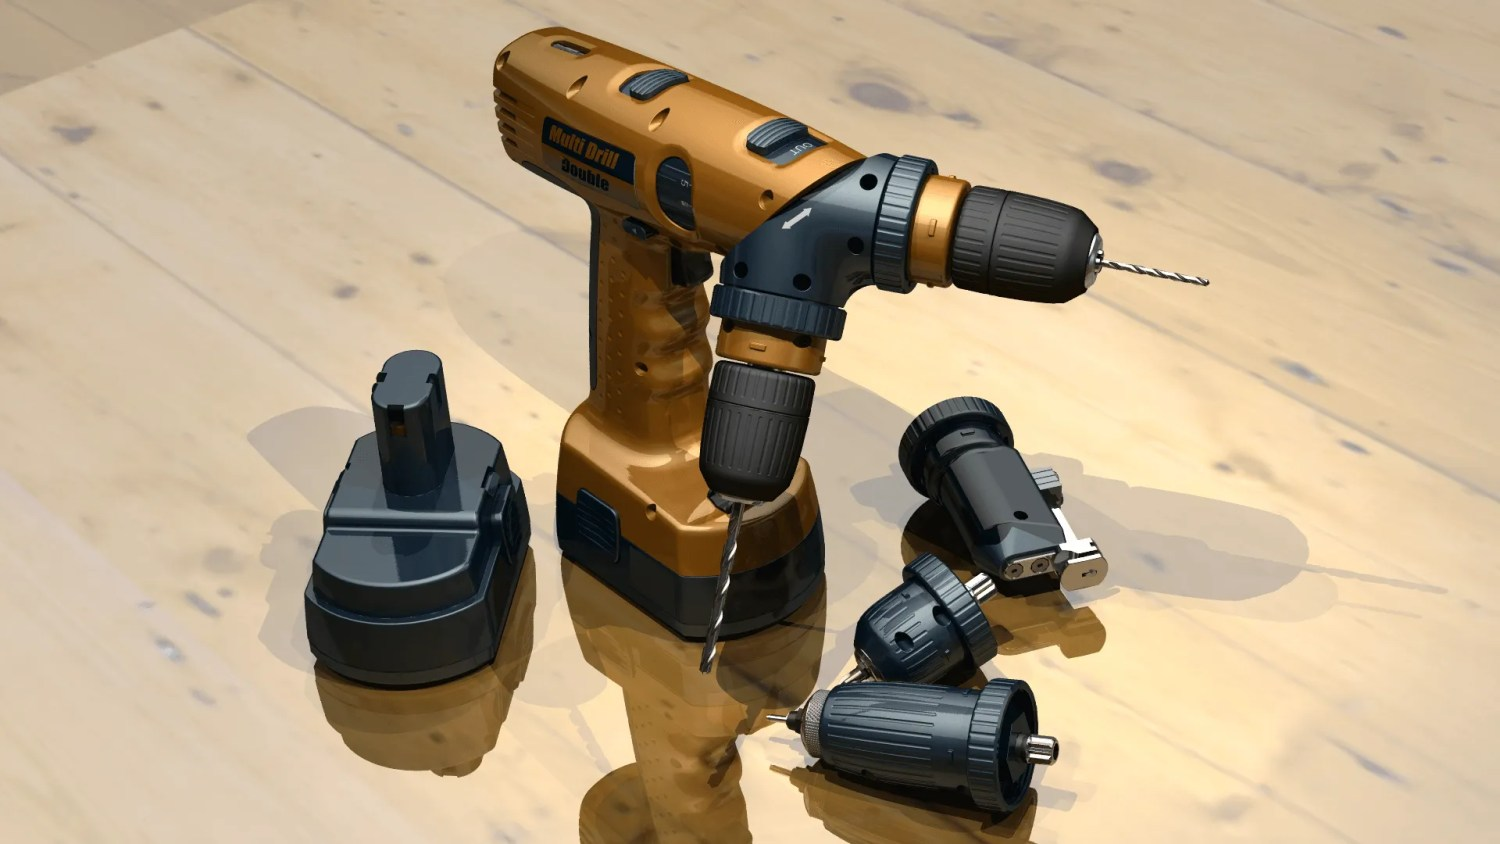 Multi Drill & Accessories - CAD Modelling